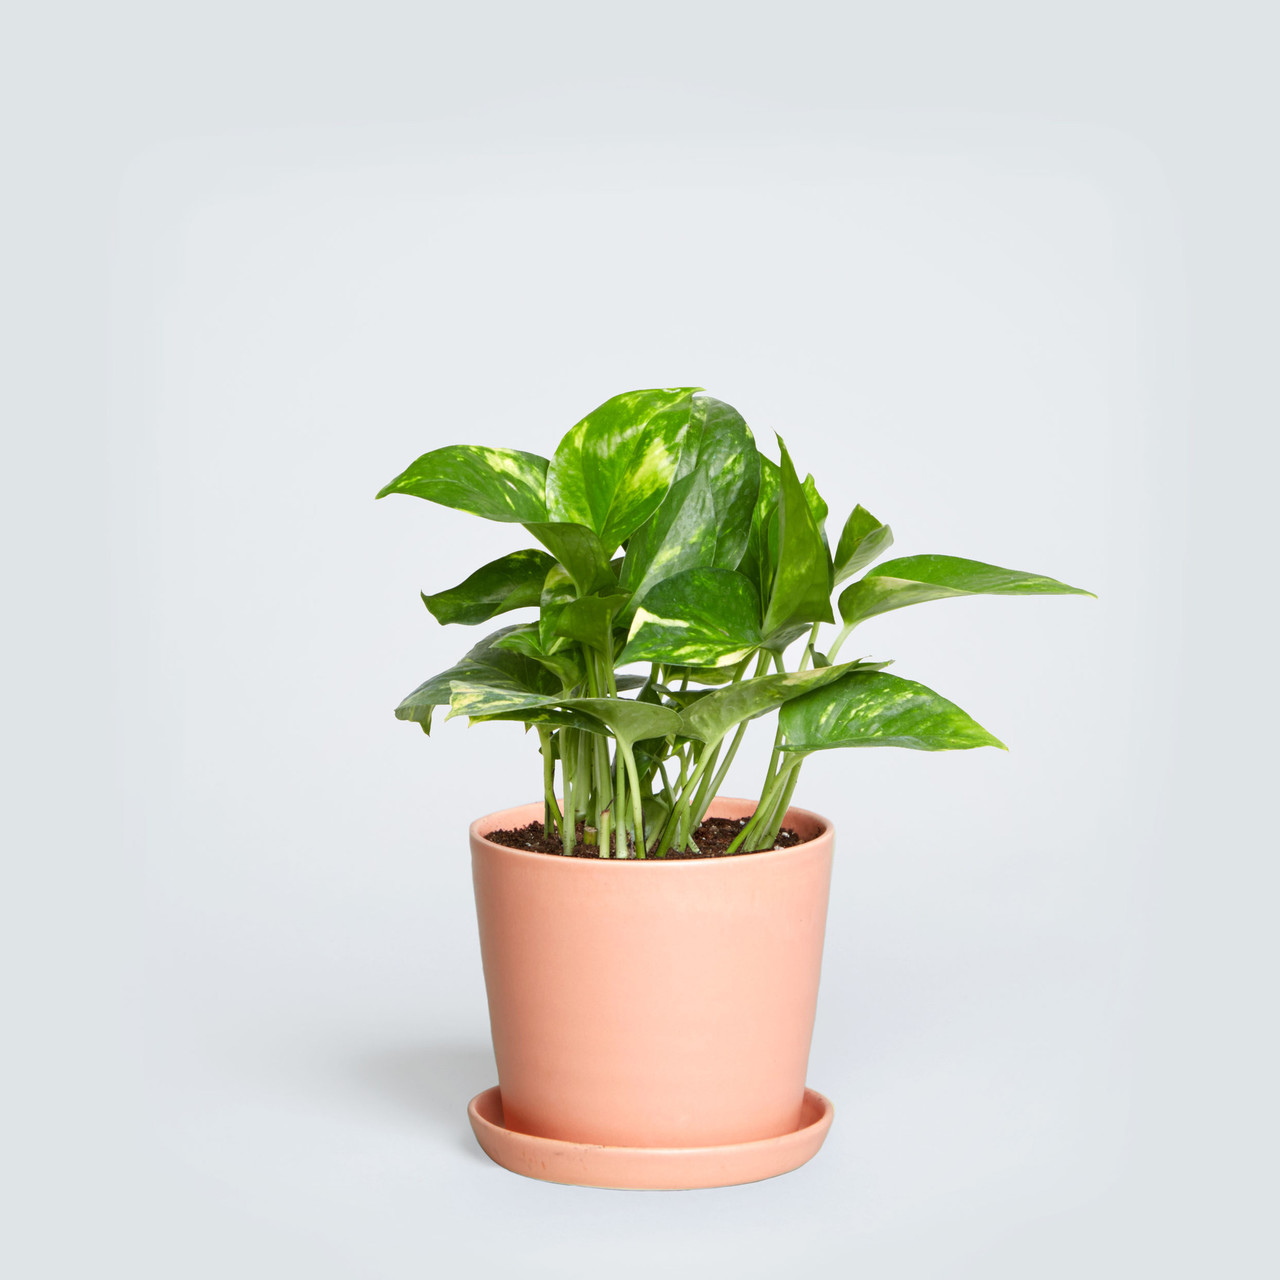 The August, Pothos